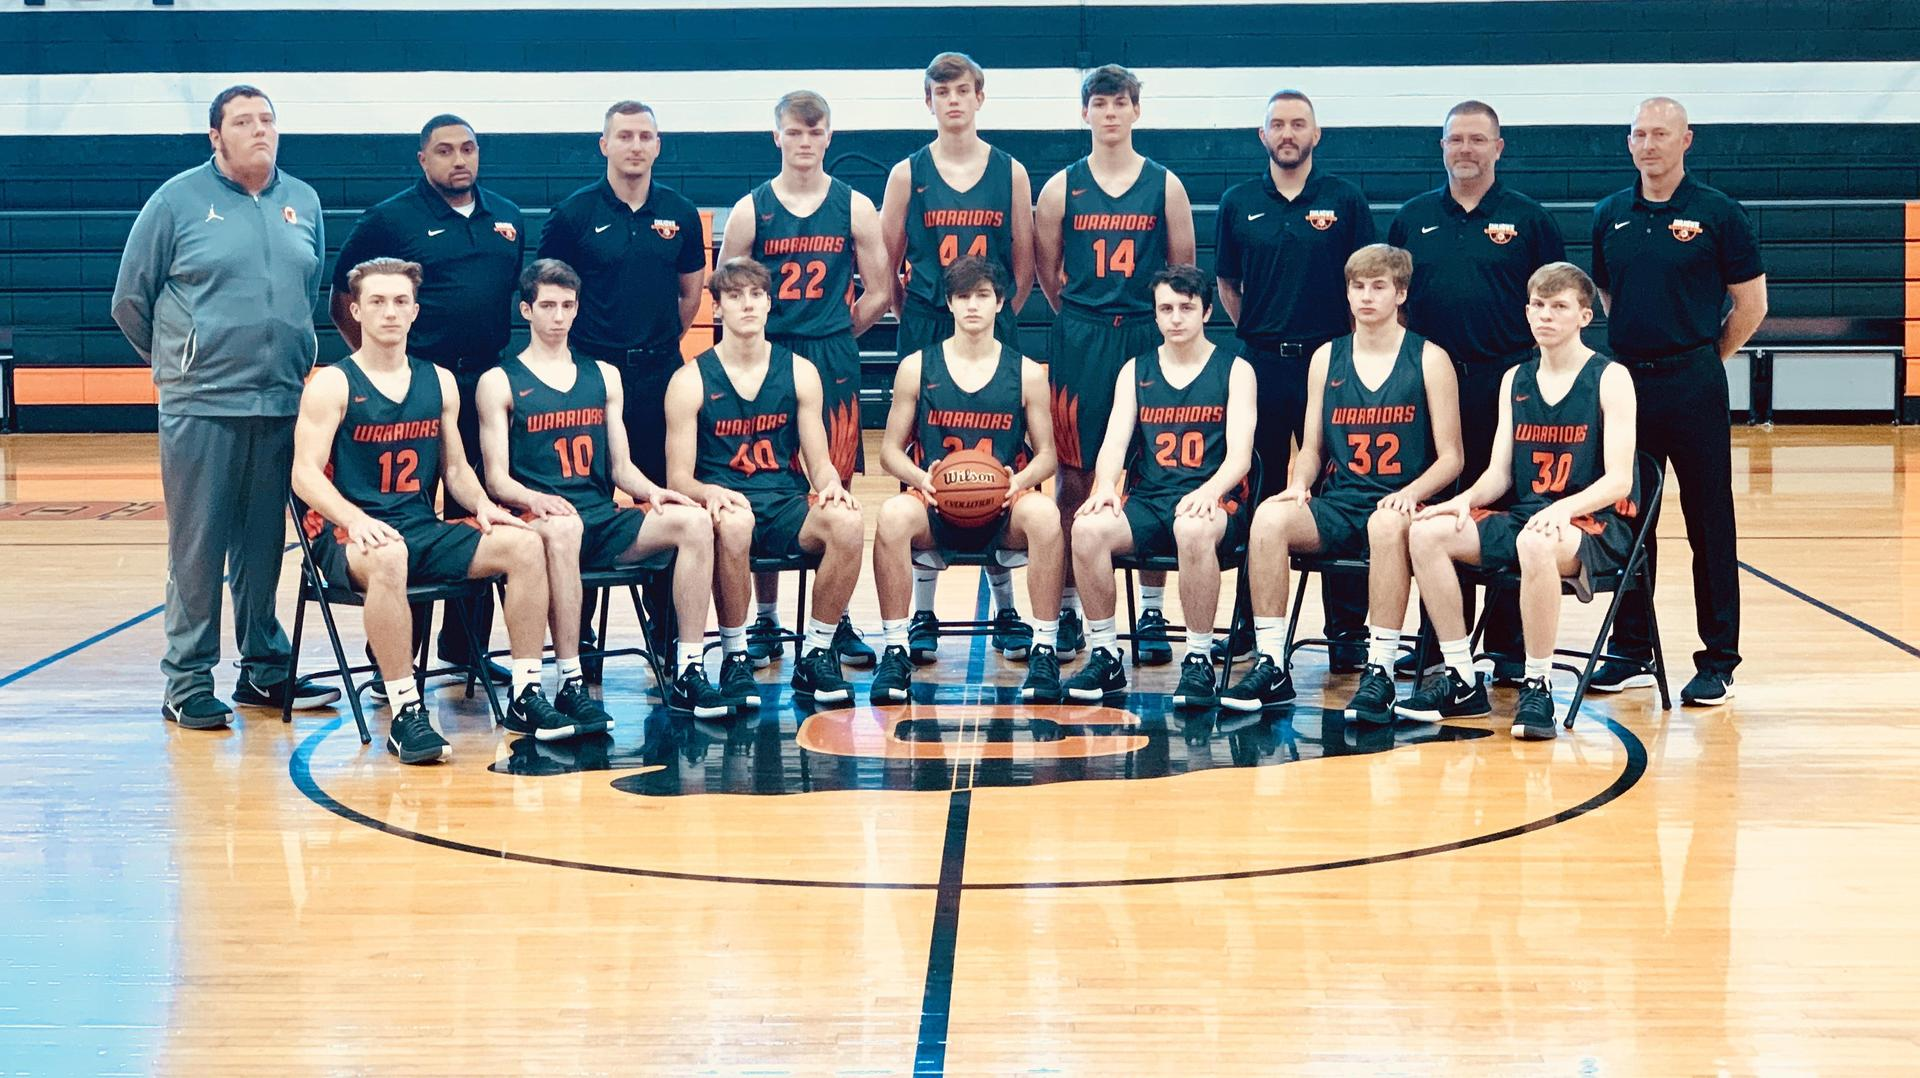 Varsity Boys Basketball Team 2019-2020